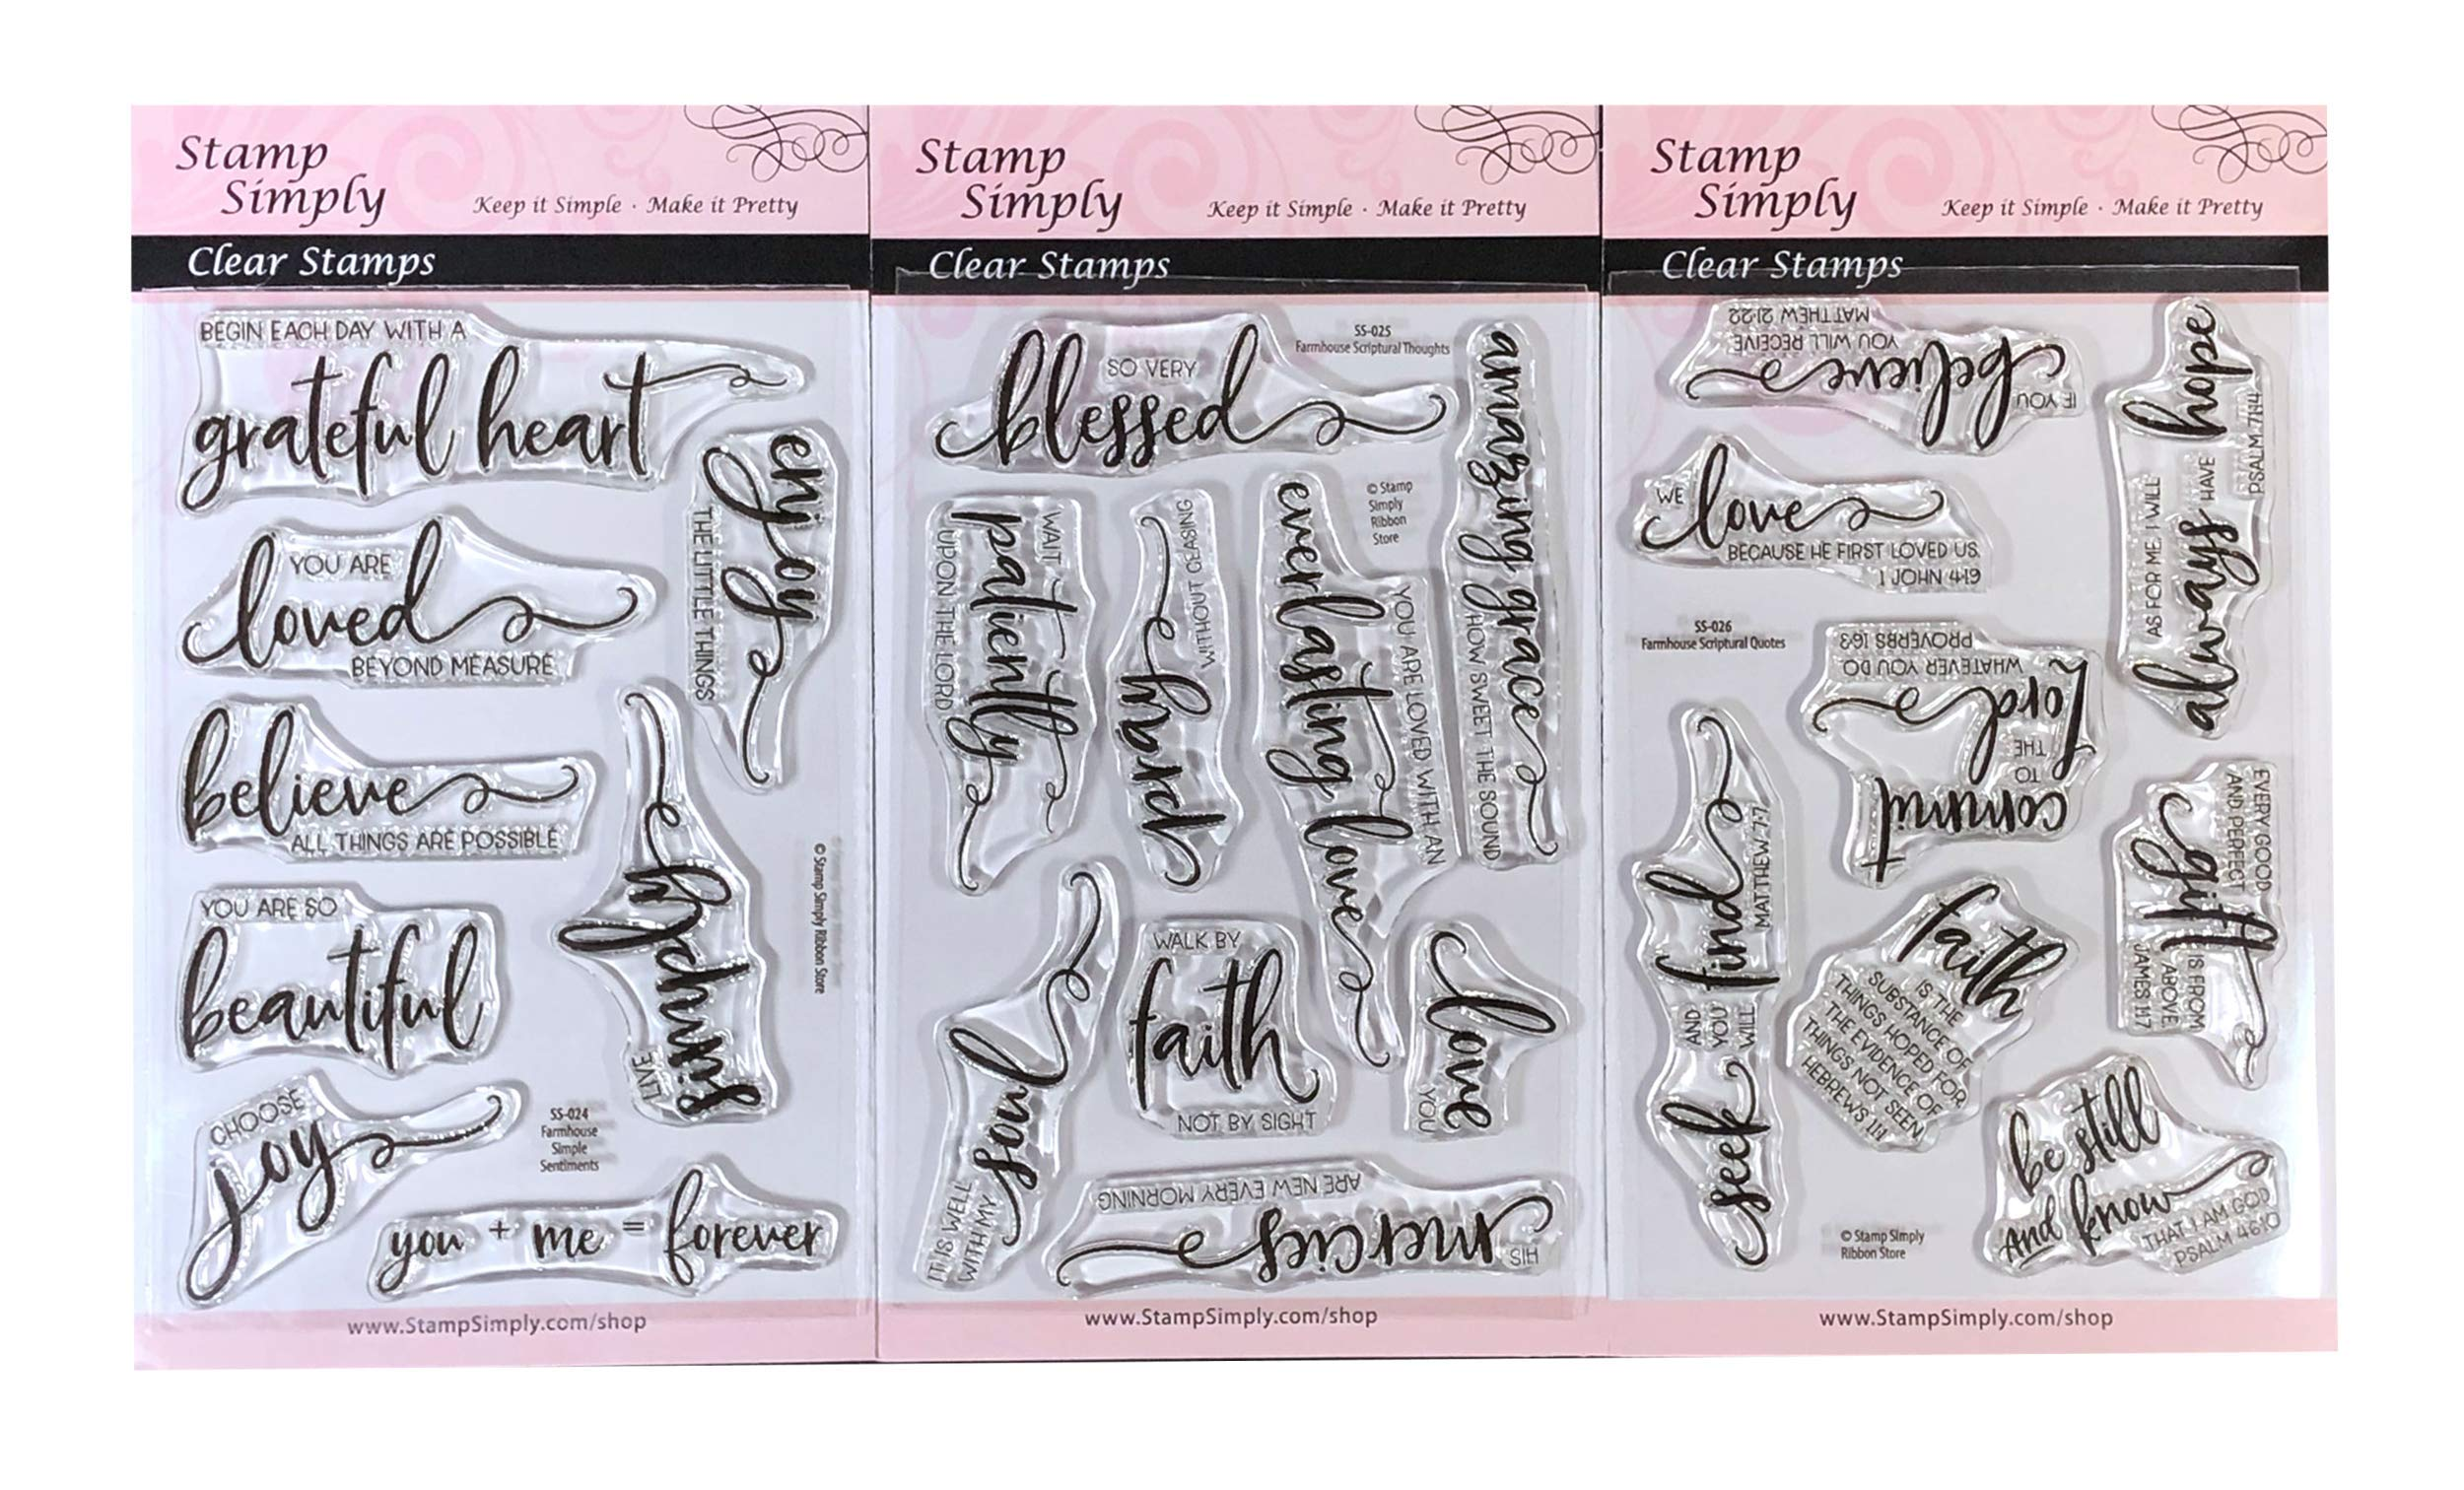 Stamp Simply Clear Stamps Scripture Sentiments Farmhouse Trio Words of Encouragement Christian Religious (3-Pack) 4x6 Inch Sheets - 25 Pieces by Stamp Simply